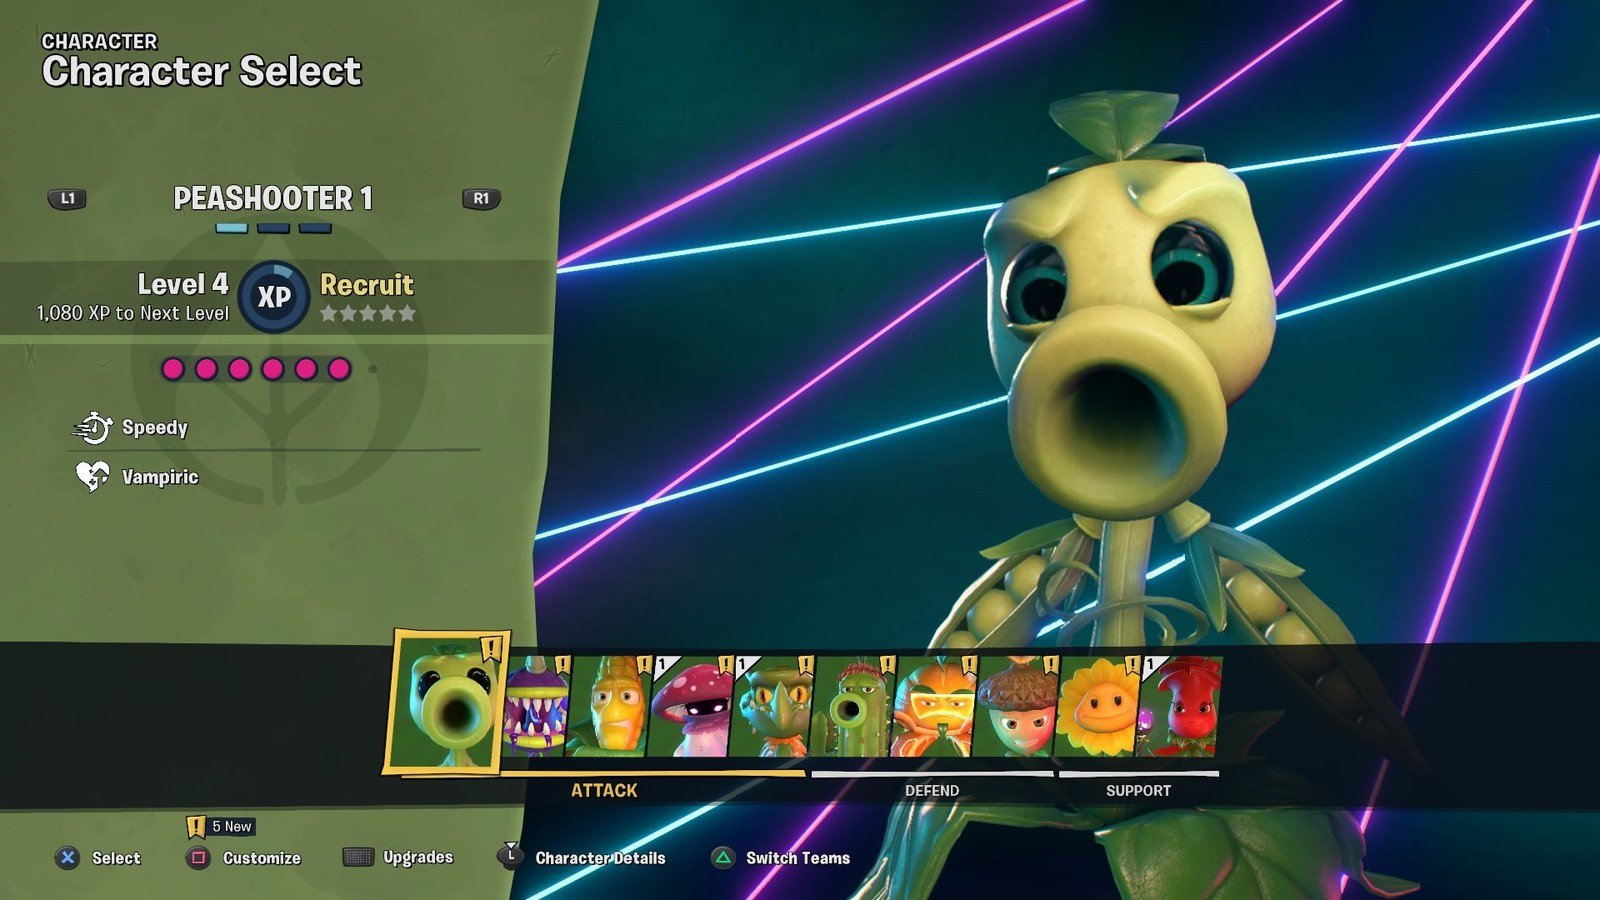 Se filtran imágenes del rumoreado Plants vs Zombies Garden Warfare 3